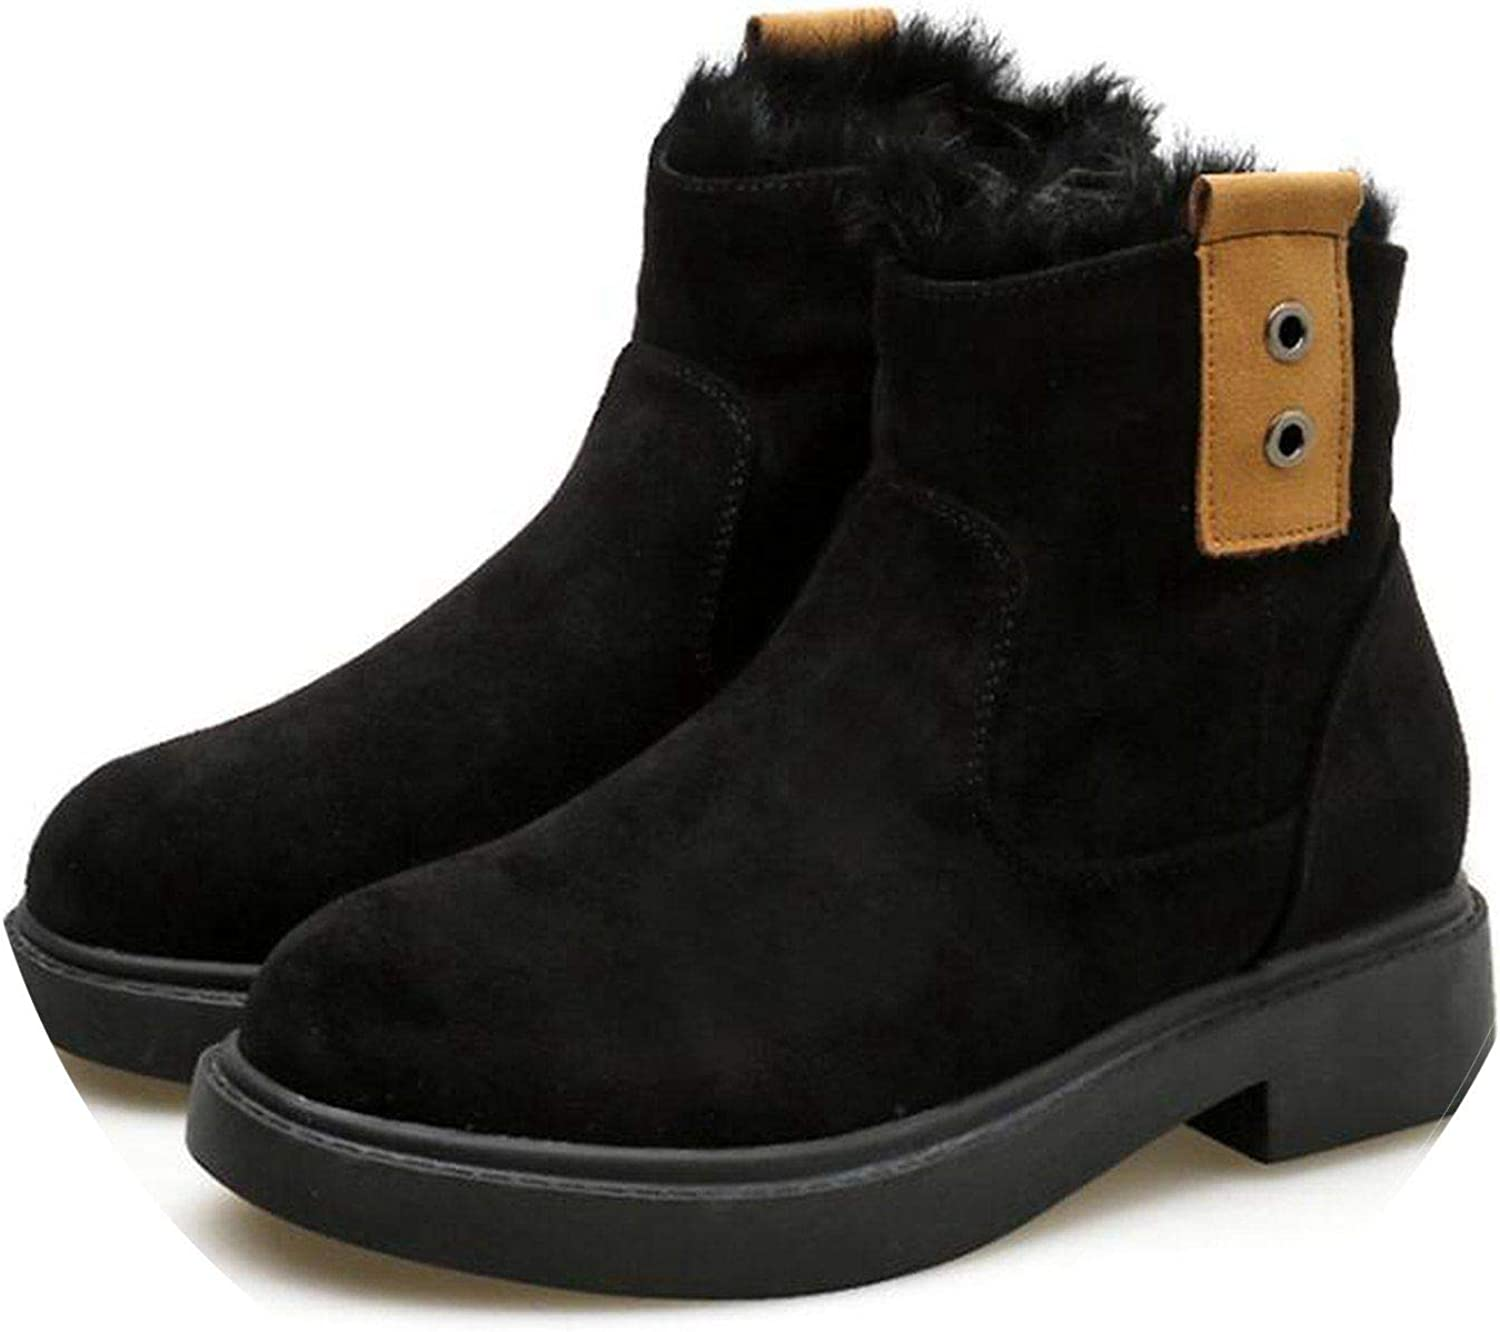 Women Winter Boots Suede Ankle Boots Warm Fur Snow Boots Chelsea Boots Low Heel